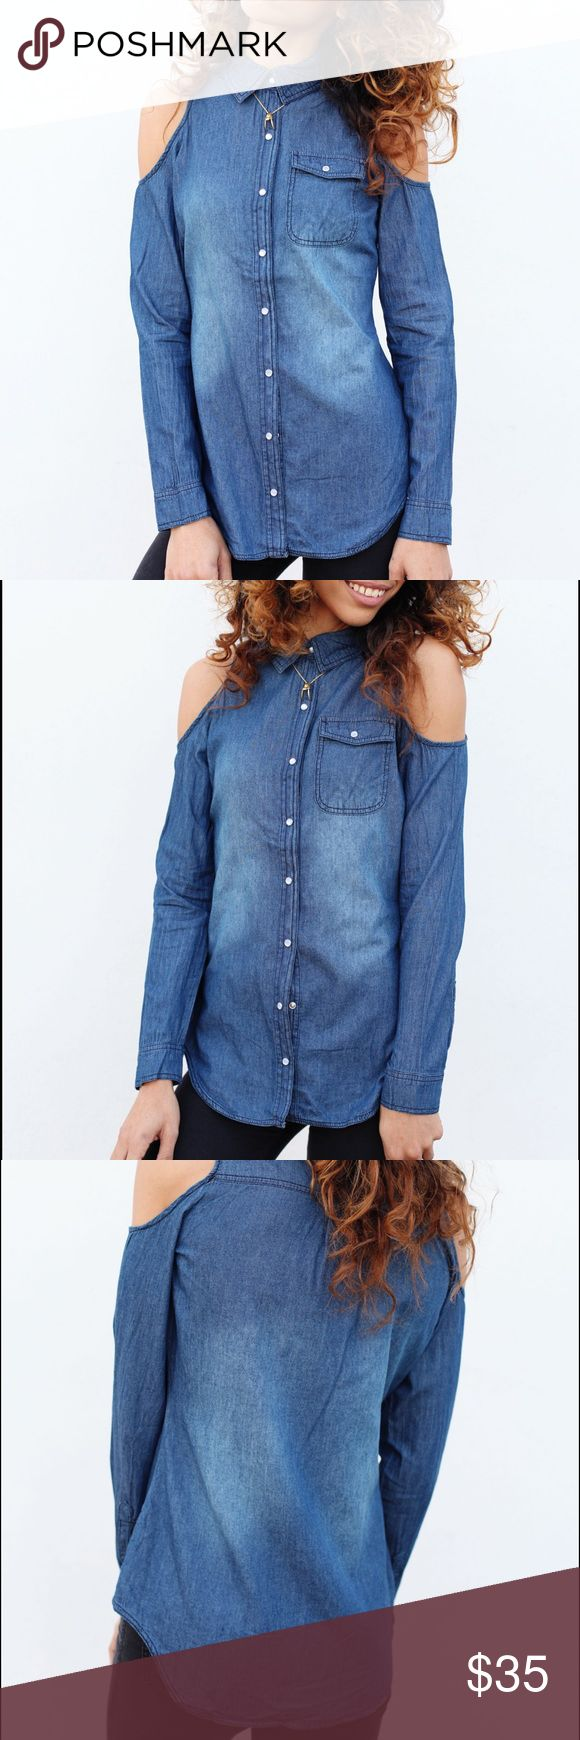 Denim Button Up Top Cecil Lee The Little Lady denim top features open shoulder sleeves, silver and pearl buttons down the front, as well as a functioning pocket.   Measurements:  Material: 100% Cotton Sleeve: 25 in Length: 26.5 Bust: 35  Measured from a Medium  Model is wearing a Small Tops Button Down Shirts